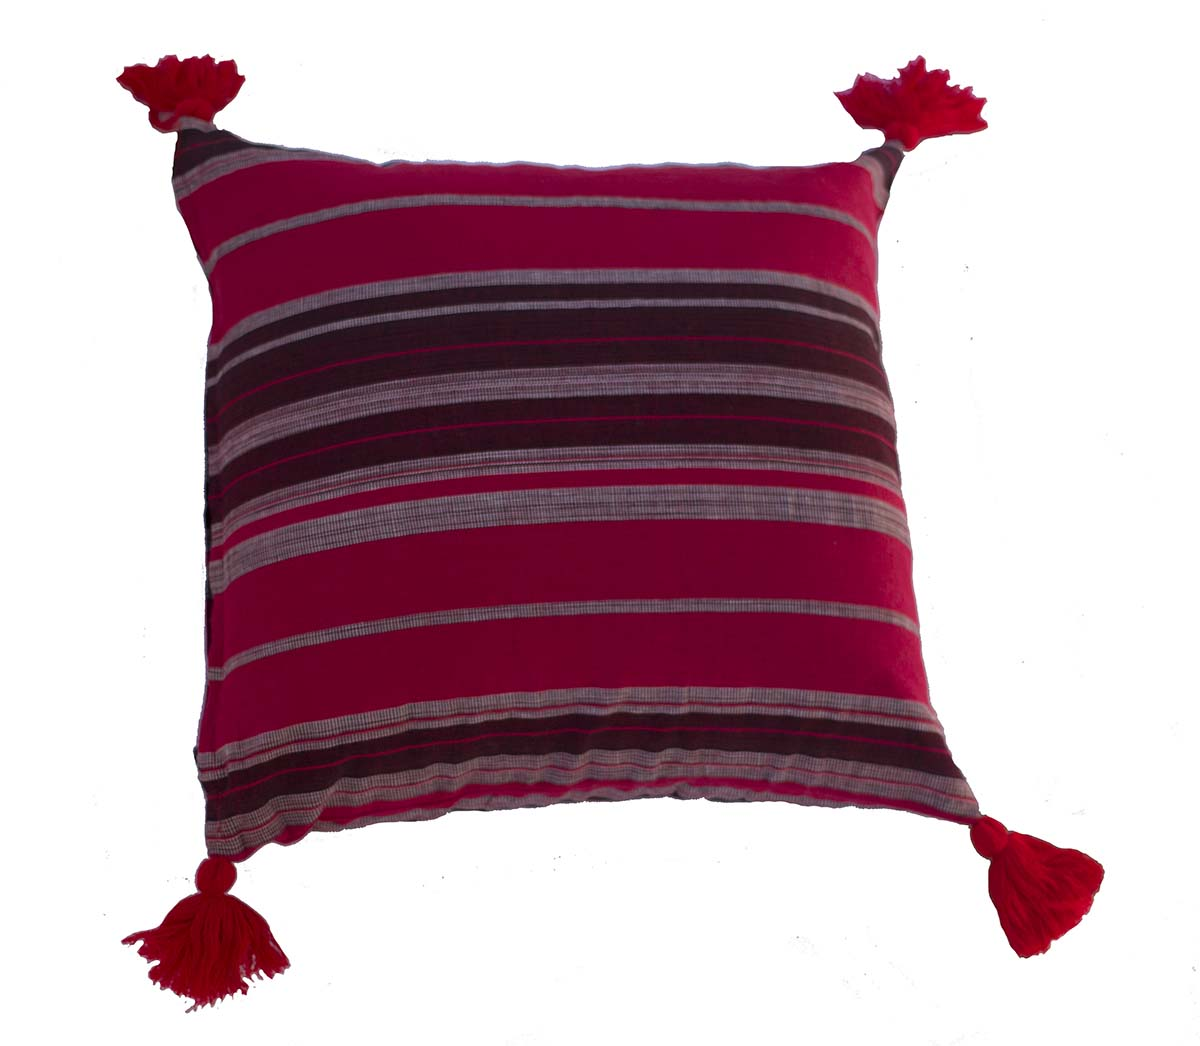 Handmade Burmese Stripe cushion cover